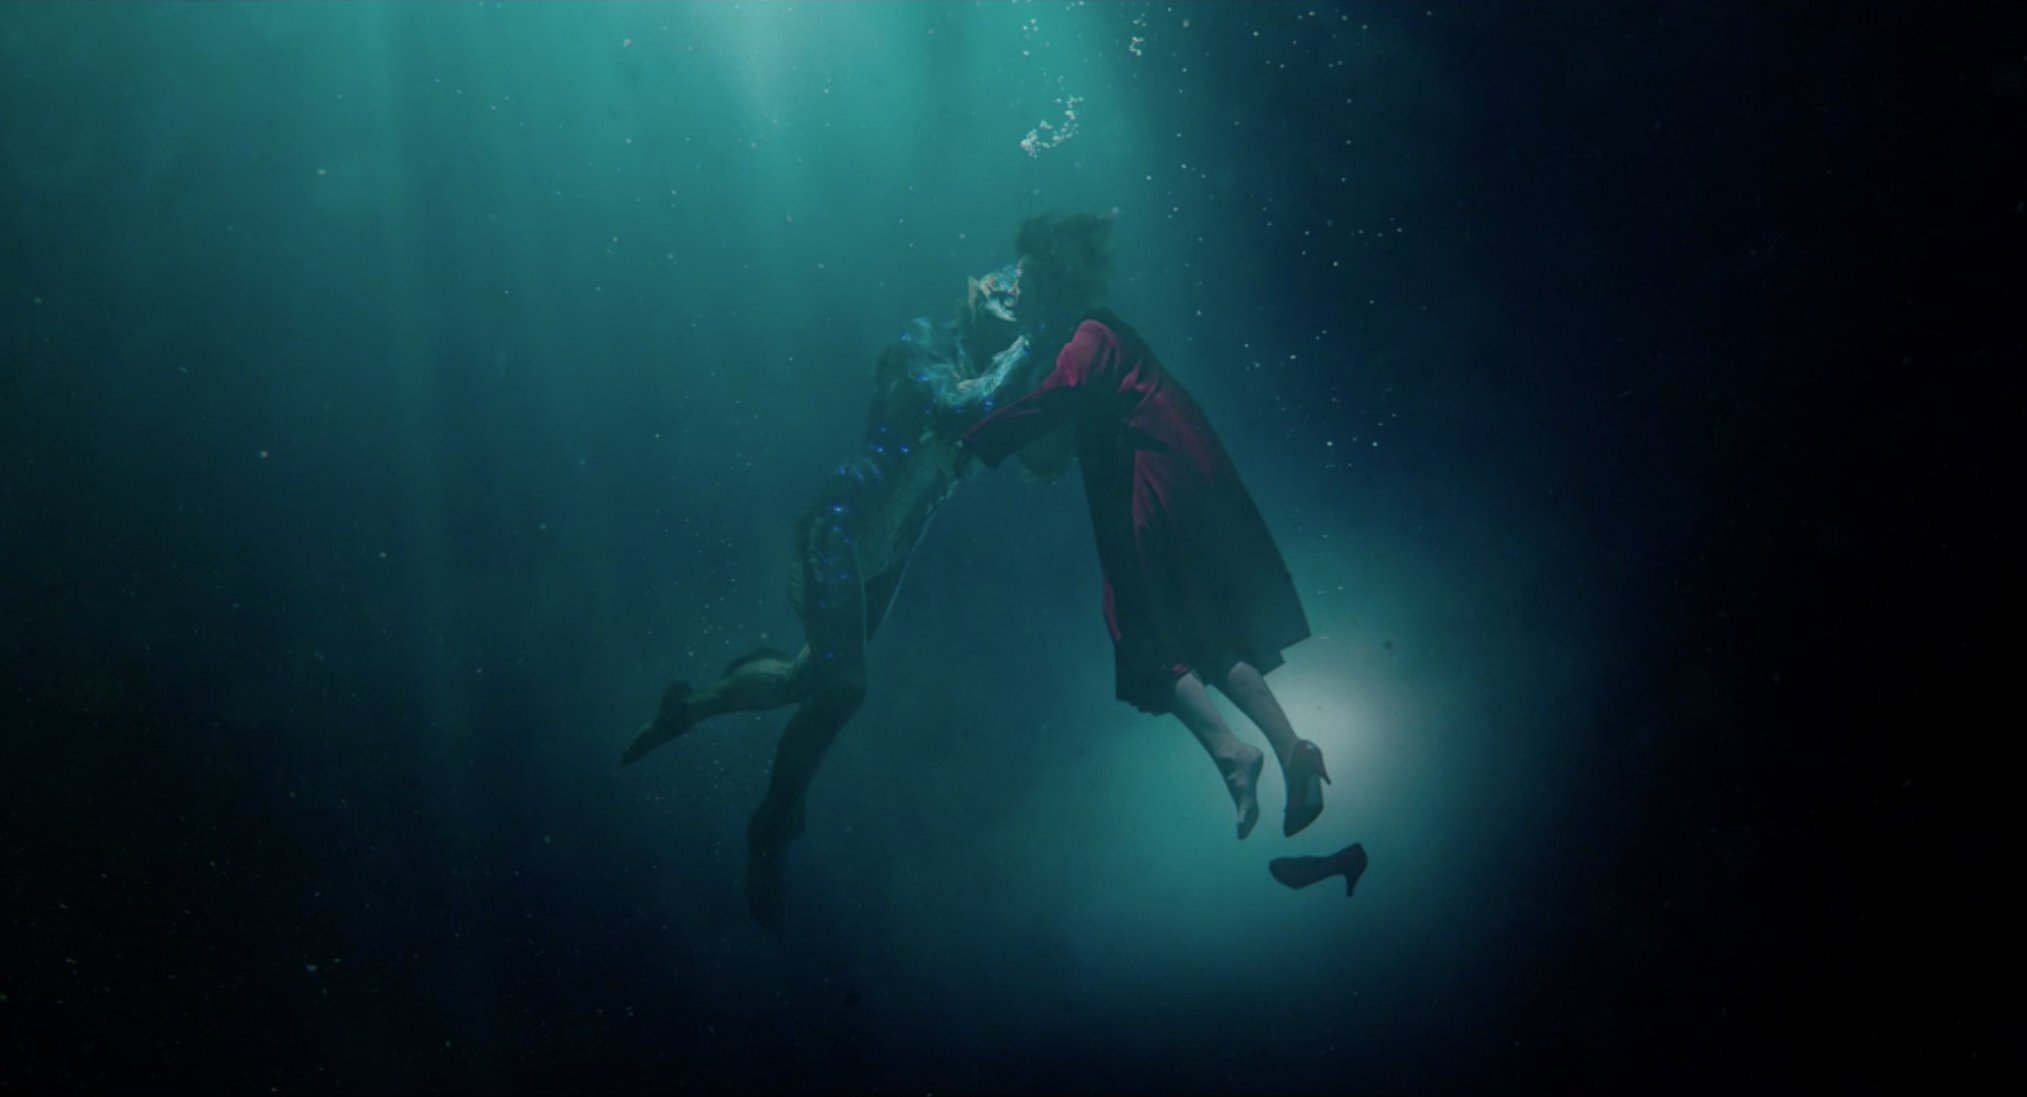 The Shape Of the Water Oscars